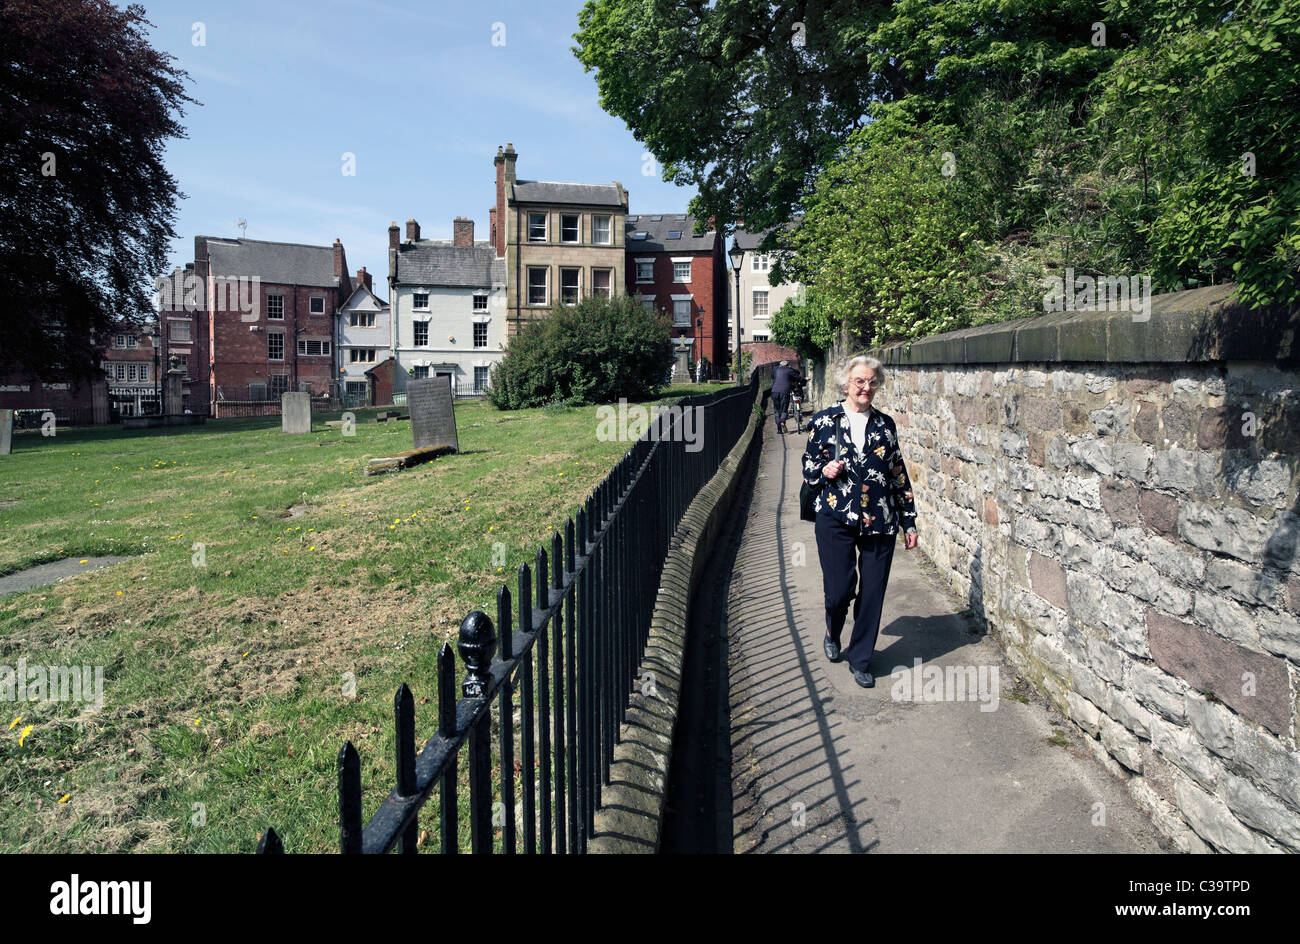 Church Walk, Wirksworth, Derbyshire - a footpath route around the churchyard (left) of St Mary's Church, next - Stock Image